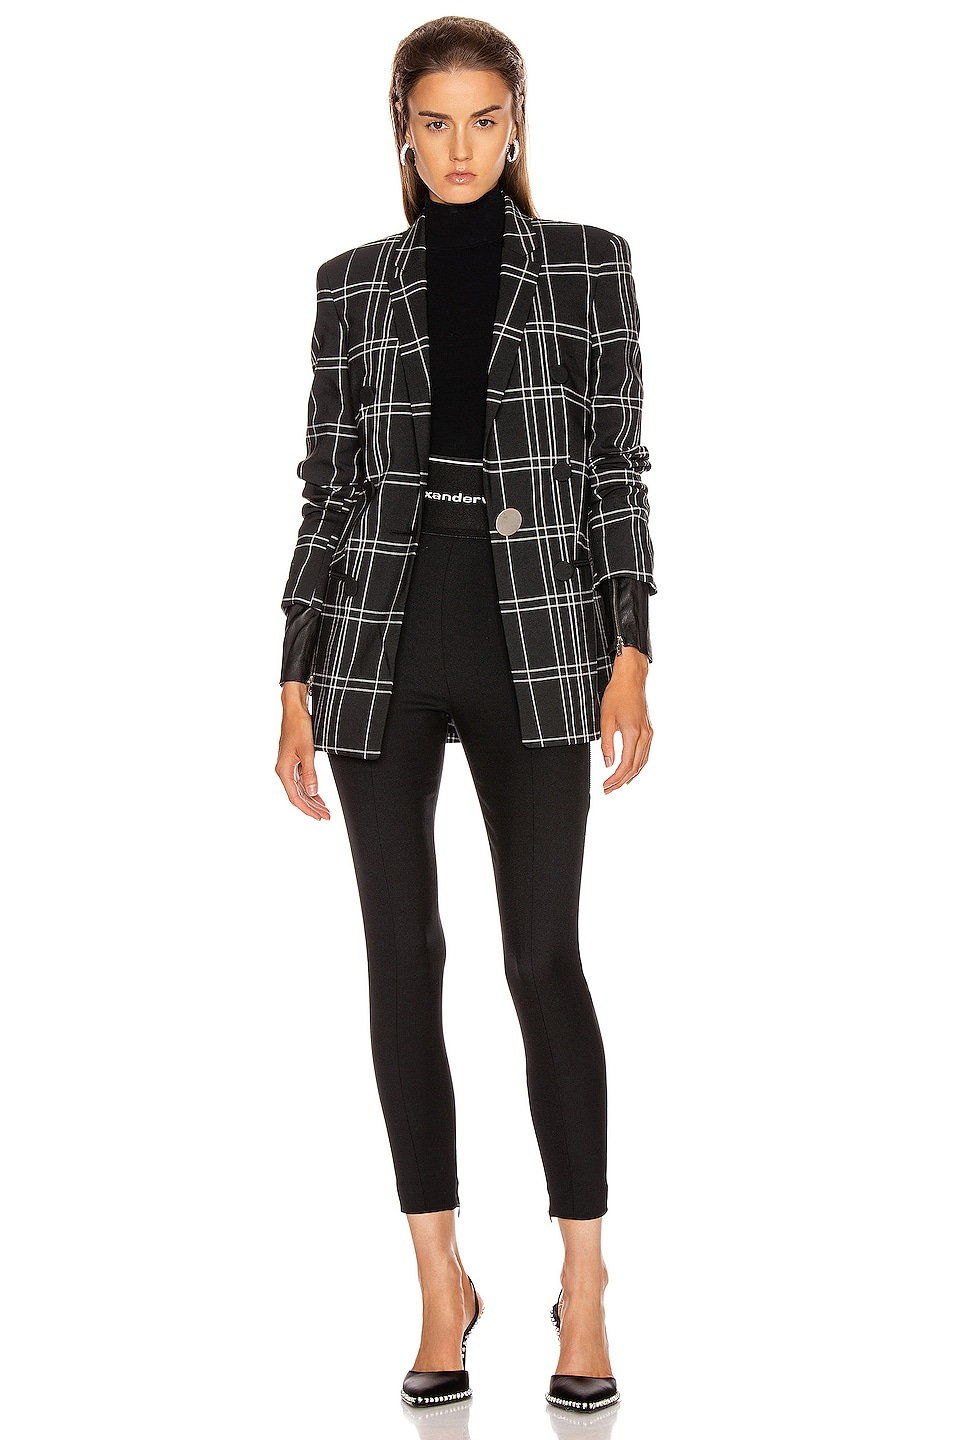 Image 5 of Alexander Wang Peaked Lapel Blazer with Leather Sleeves in Black & White Windowpane